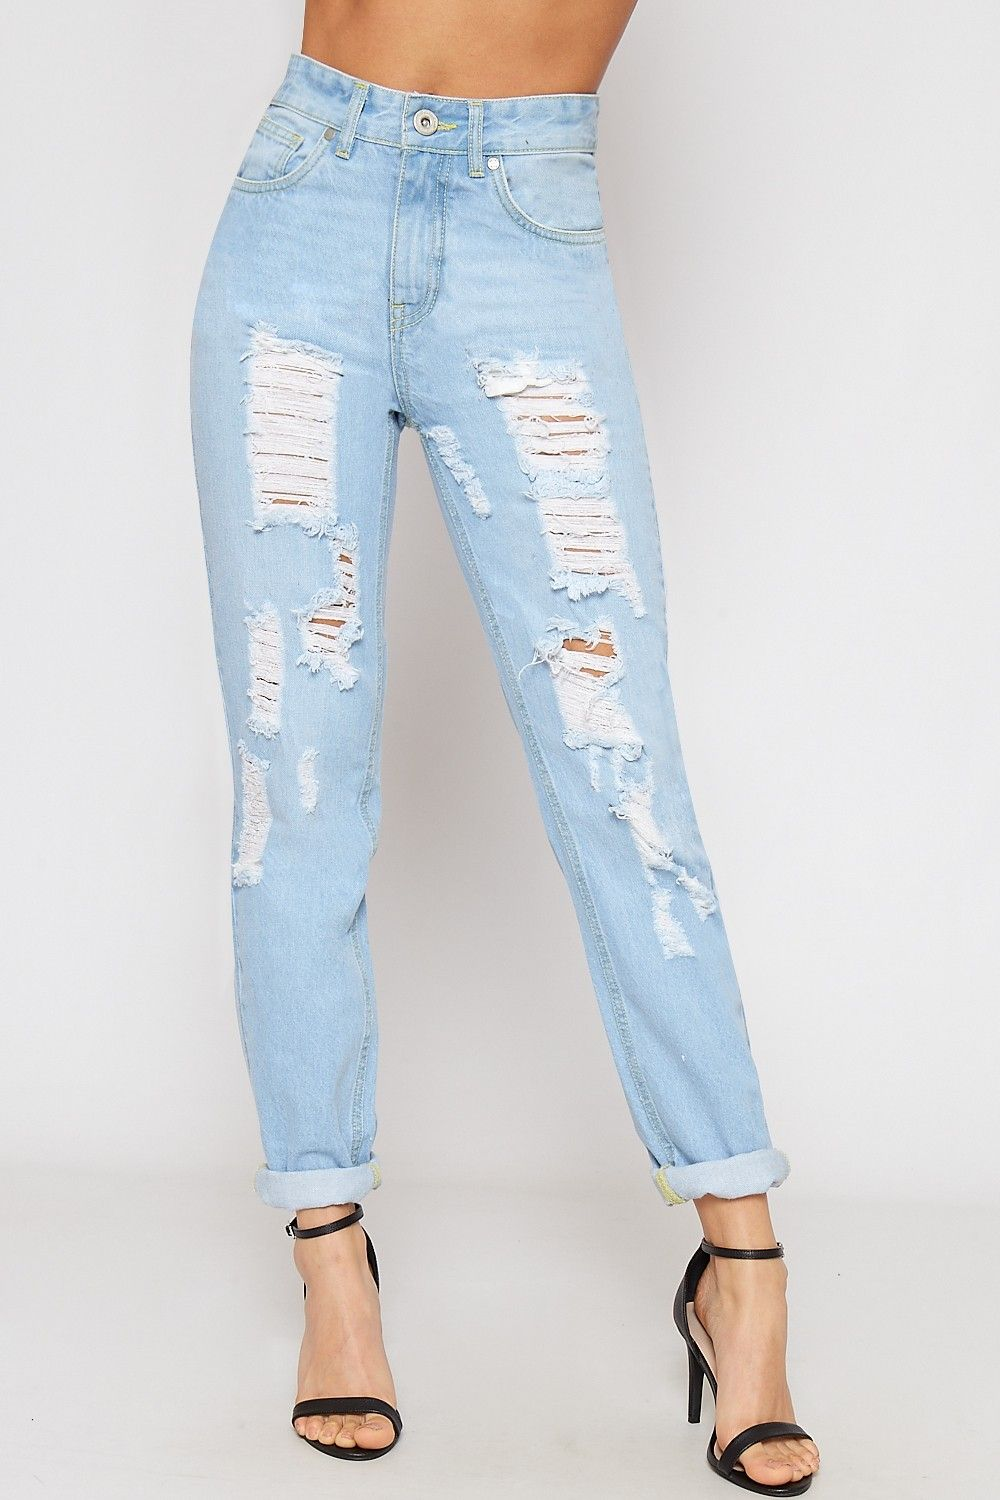 4db54d4c1c7db7 Shop for Women's Jeans and denim at WearAll. Choose from a huge range of  styles, including skinny jeans, boyfriend jeans, bootcut, straight leg and  hipster.